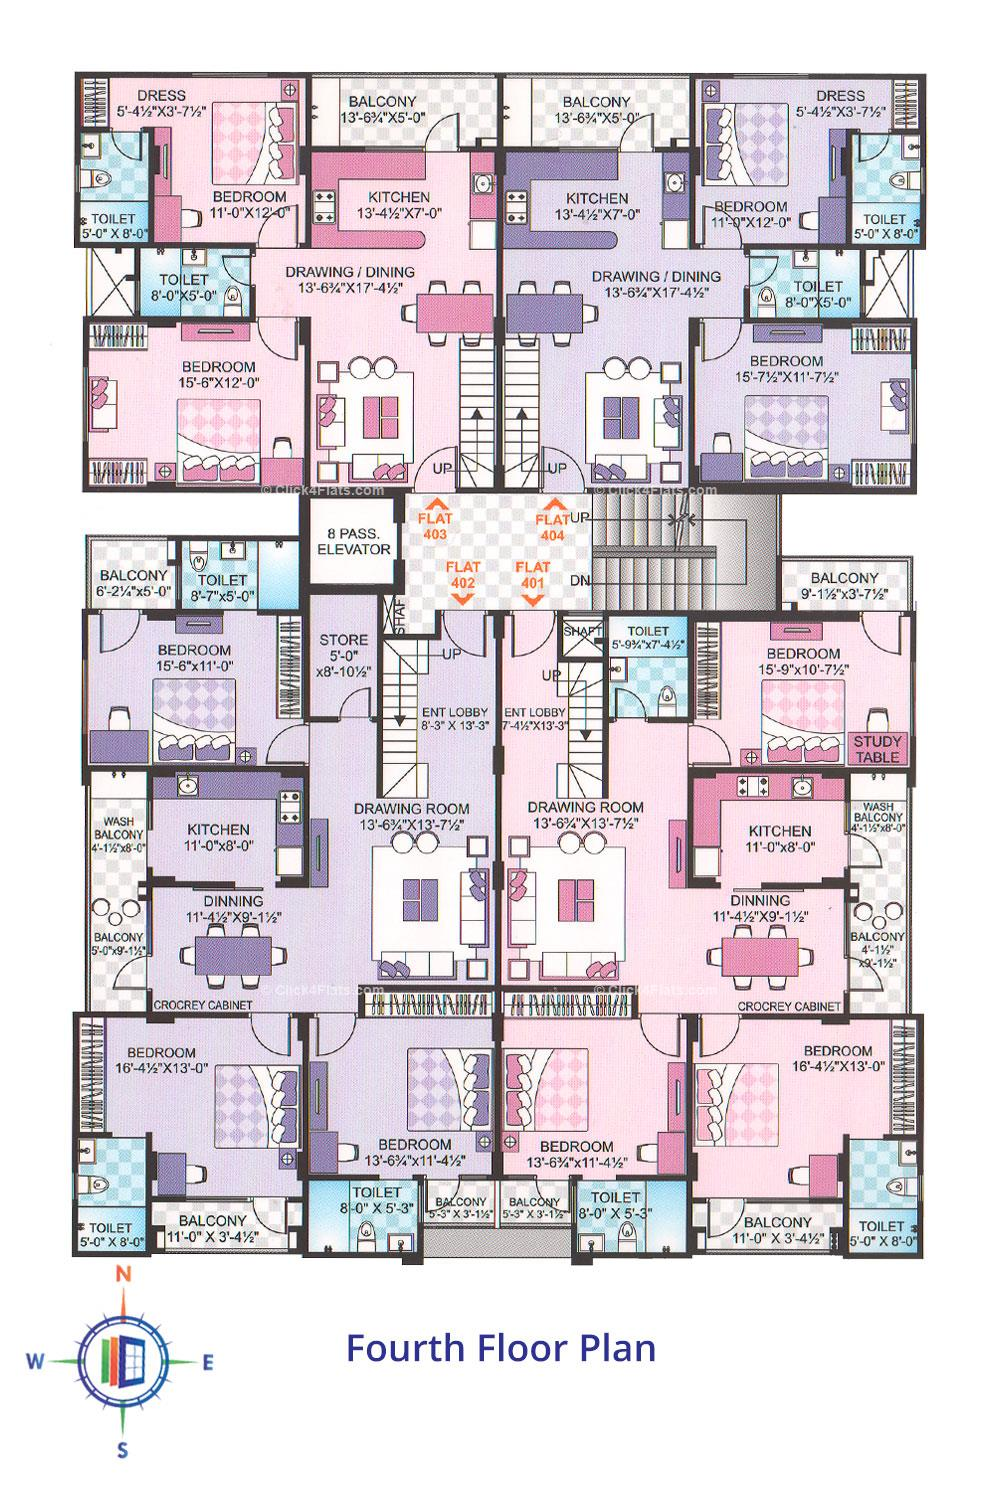 Luxuria Fourth Floor Plan